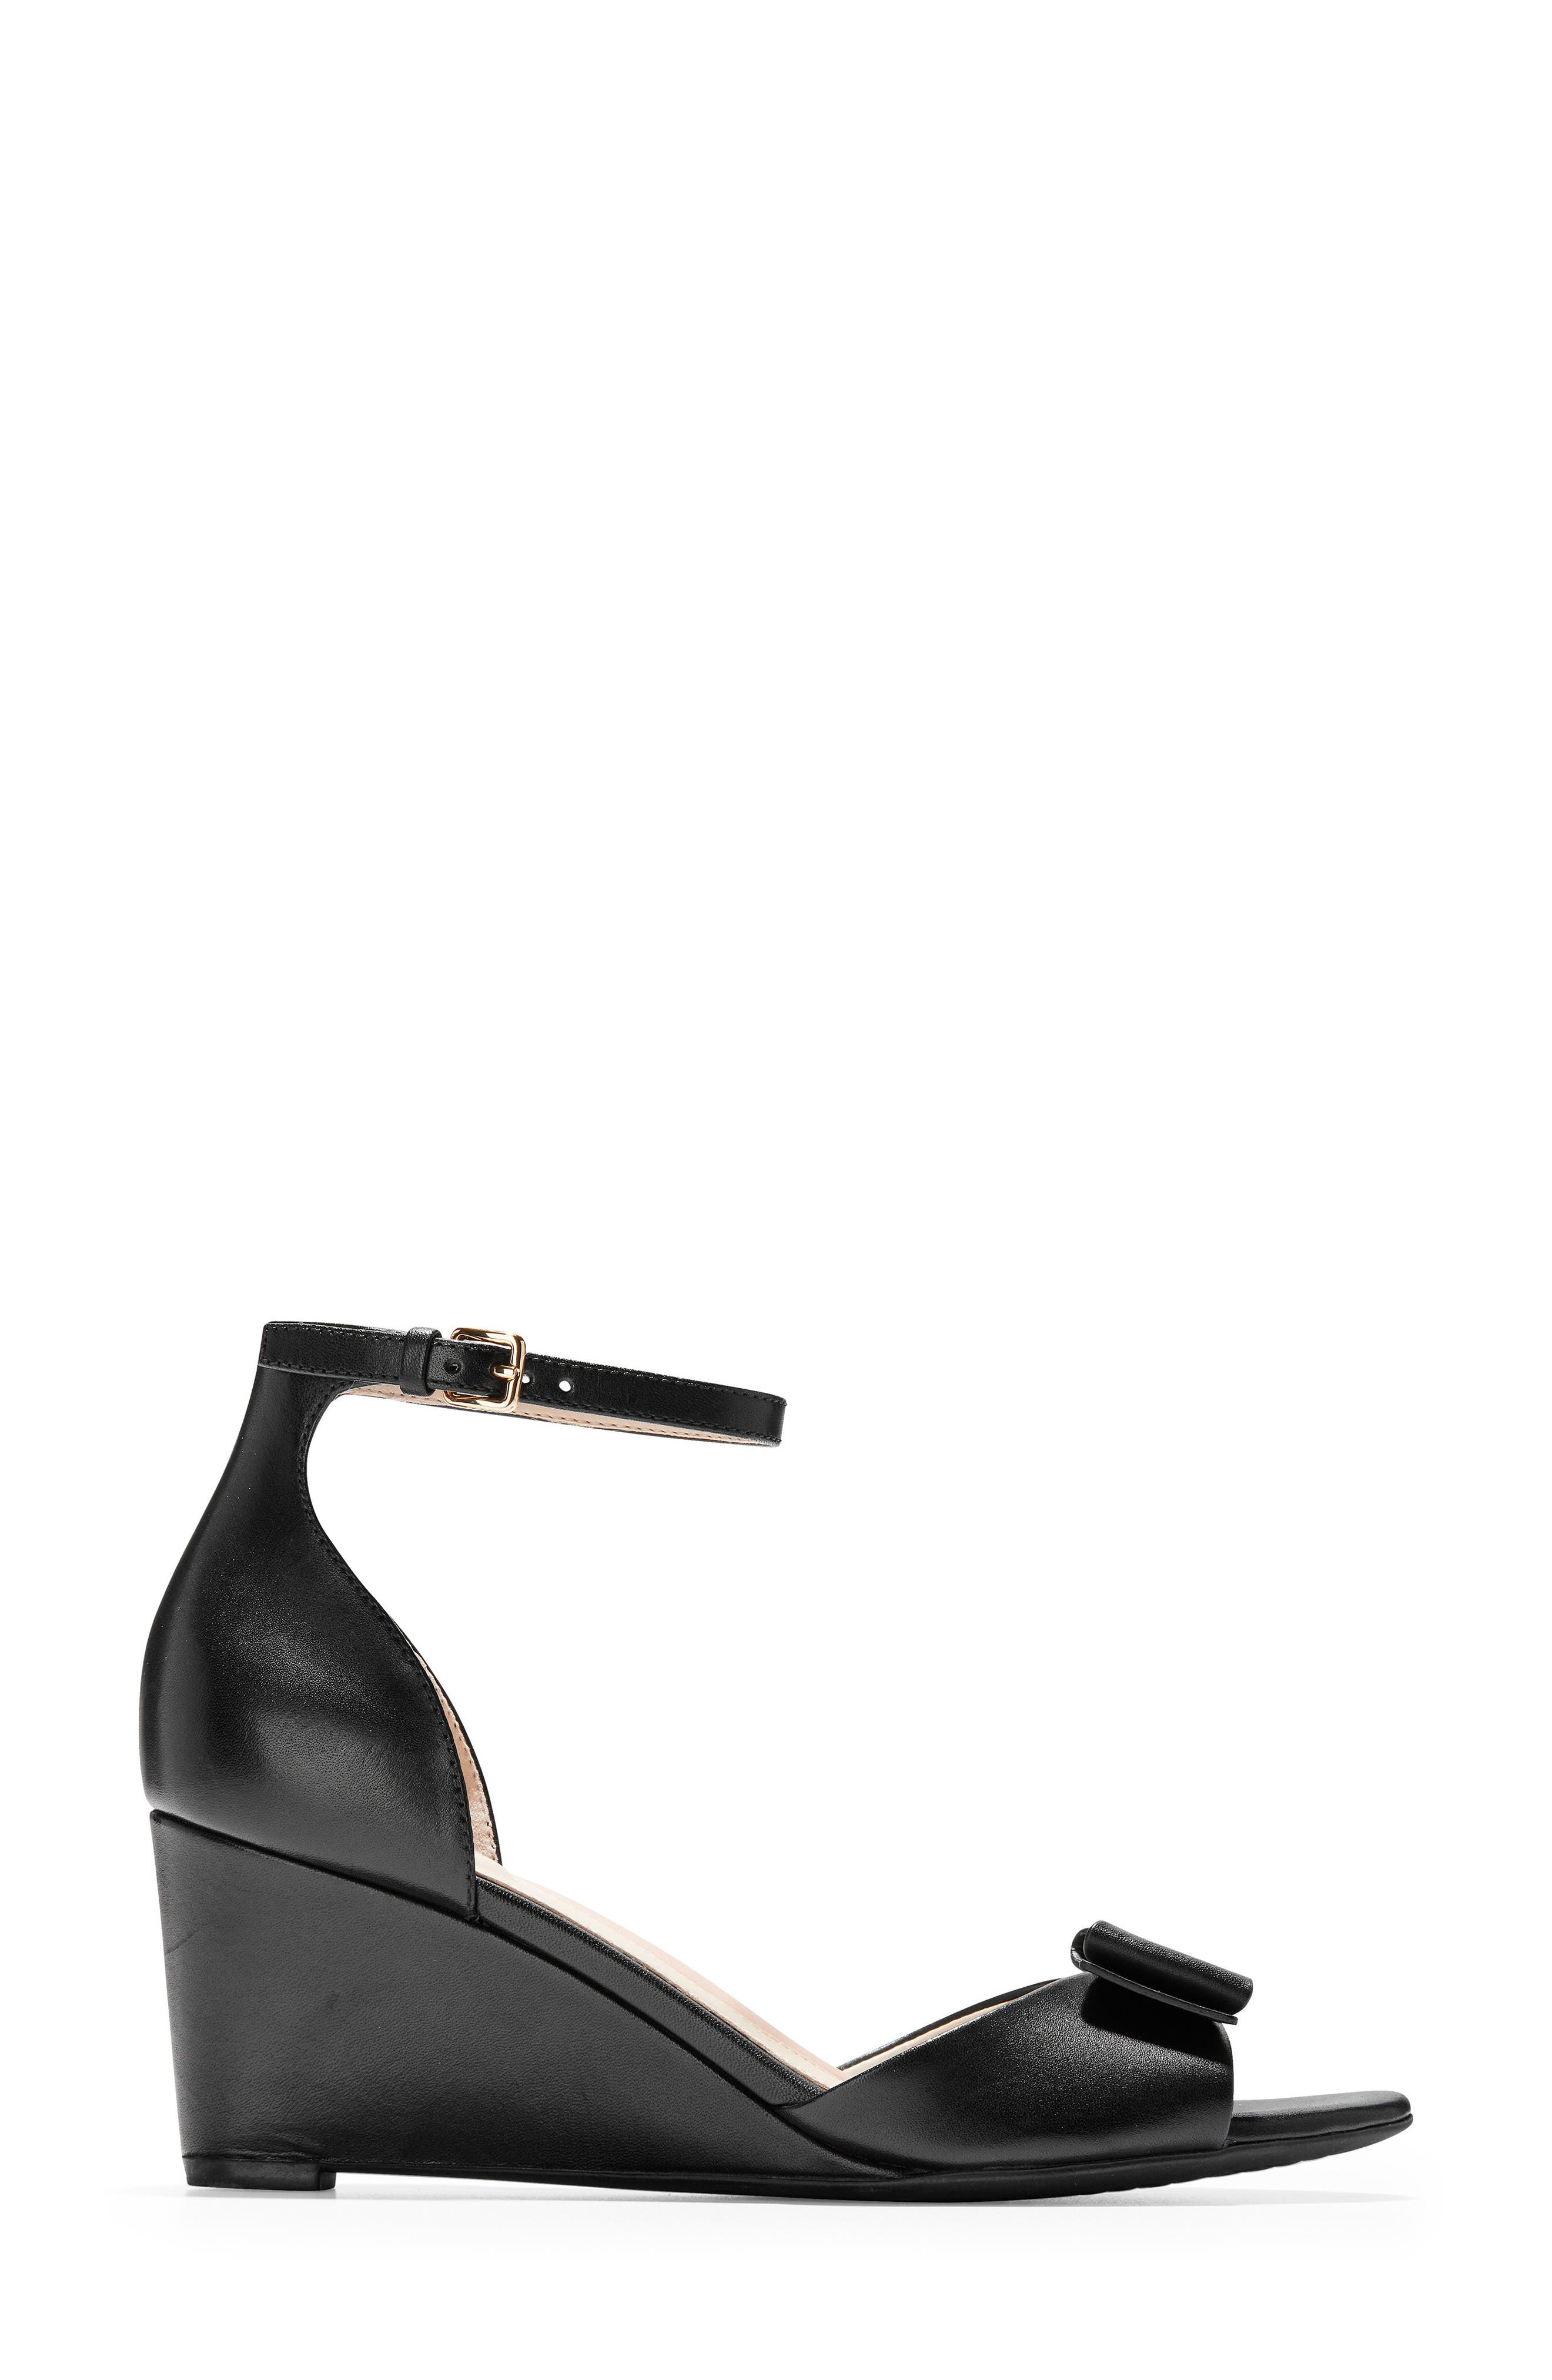 COLE HAAN, Tali Bow Wedge Sandal, Alternate thumbnail 3, color, BLACK LEATHER